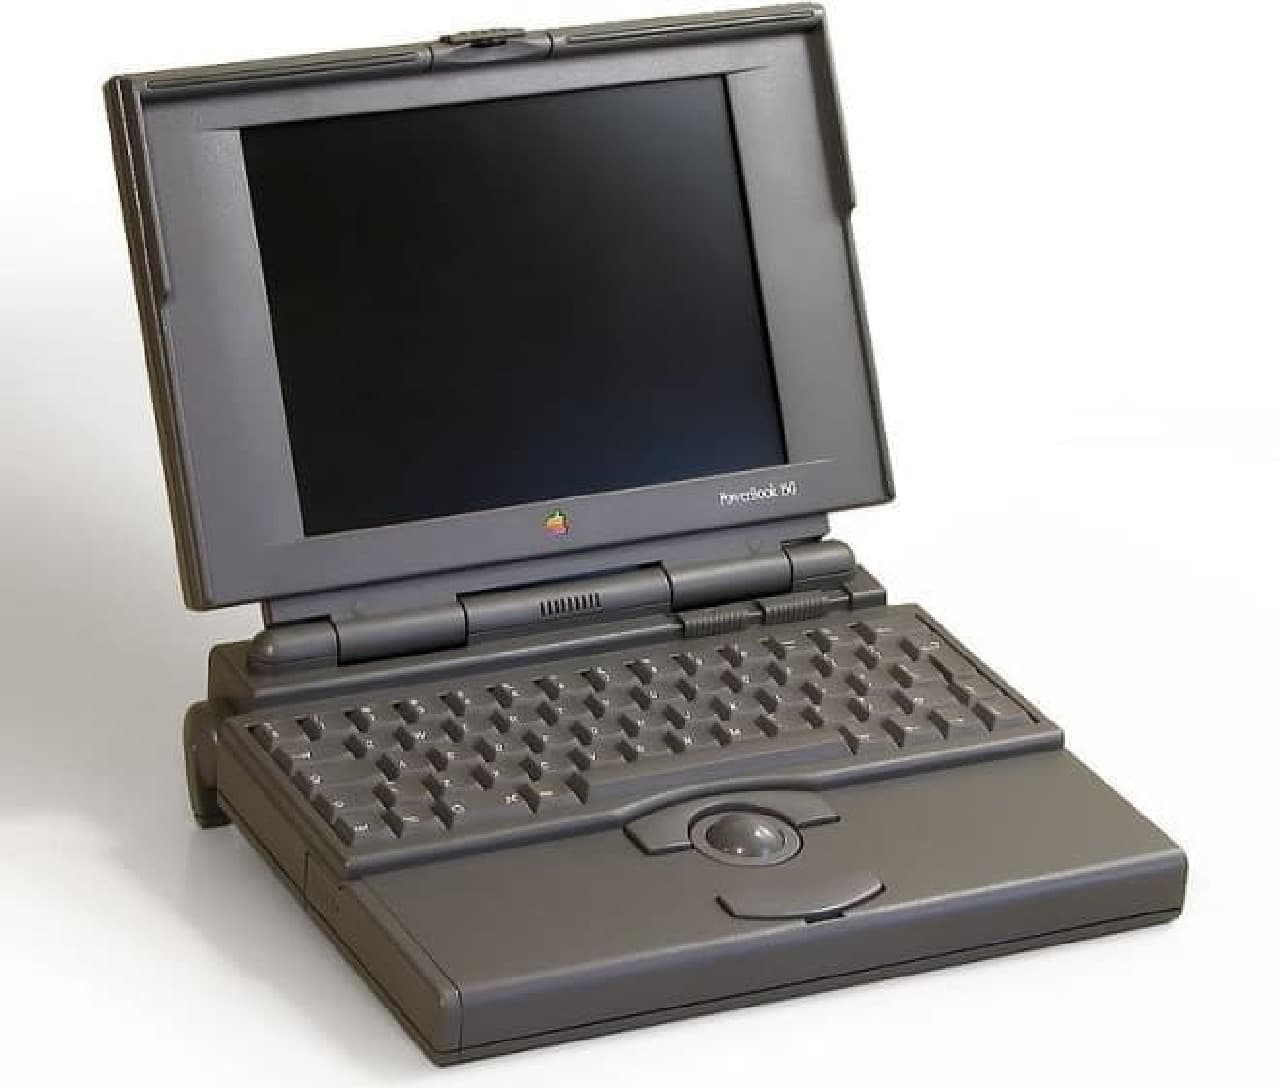 Apple社のPowerBook